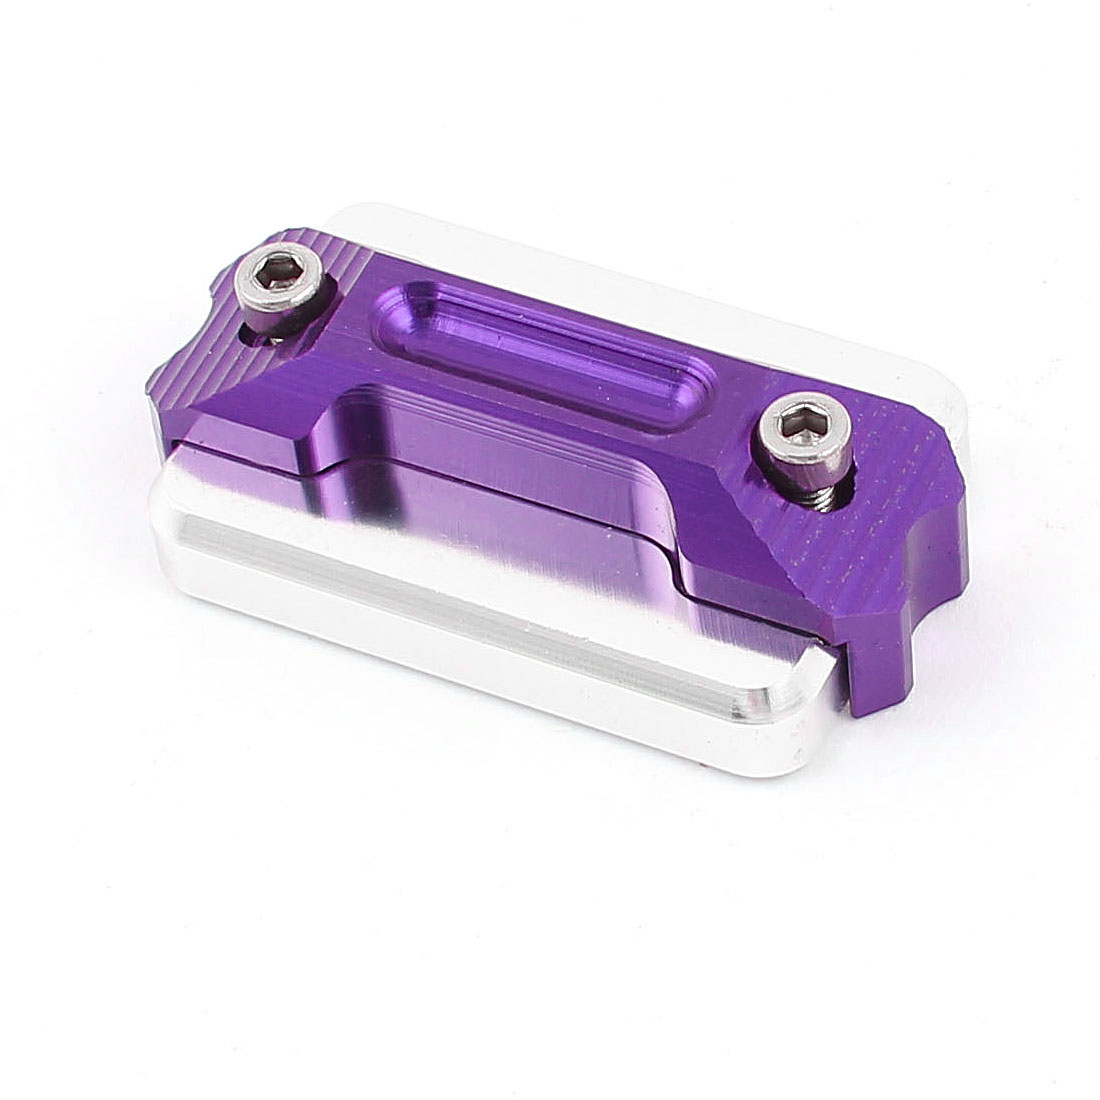 Motorbike Motorcycle Metal Modified Dual Layers Water Pump Cover Silver Tone Purple